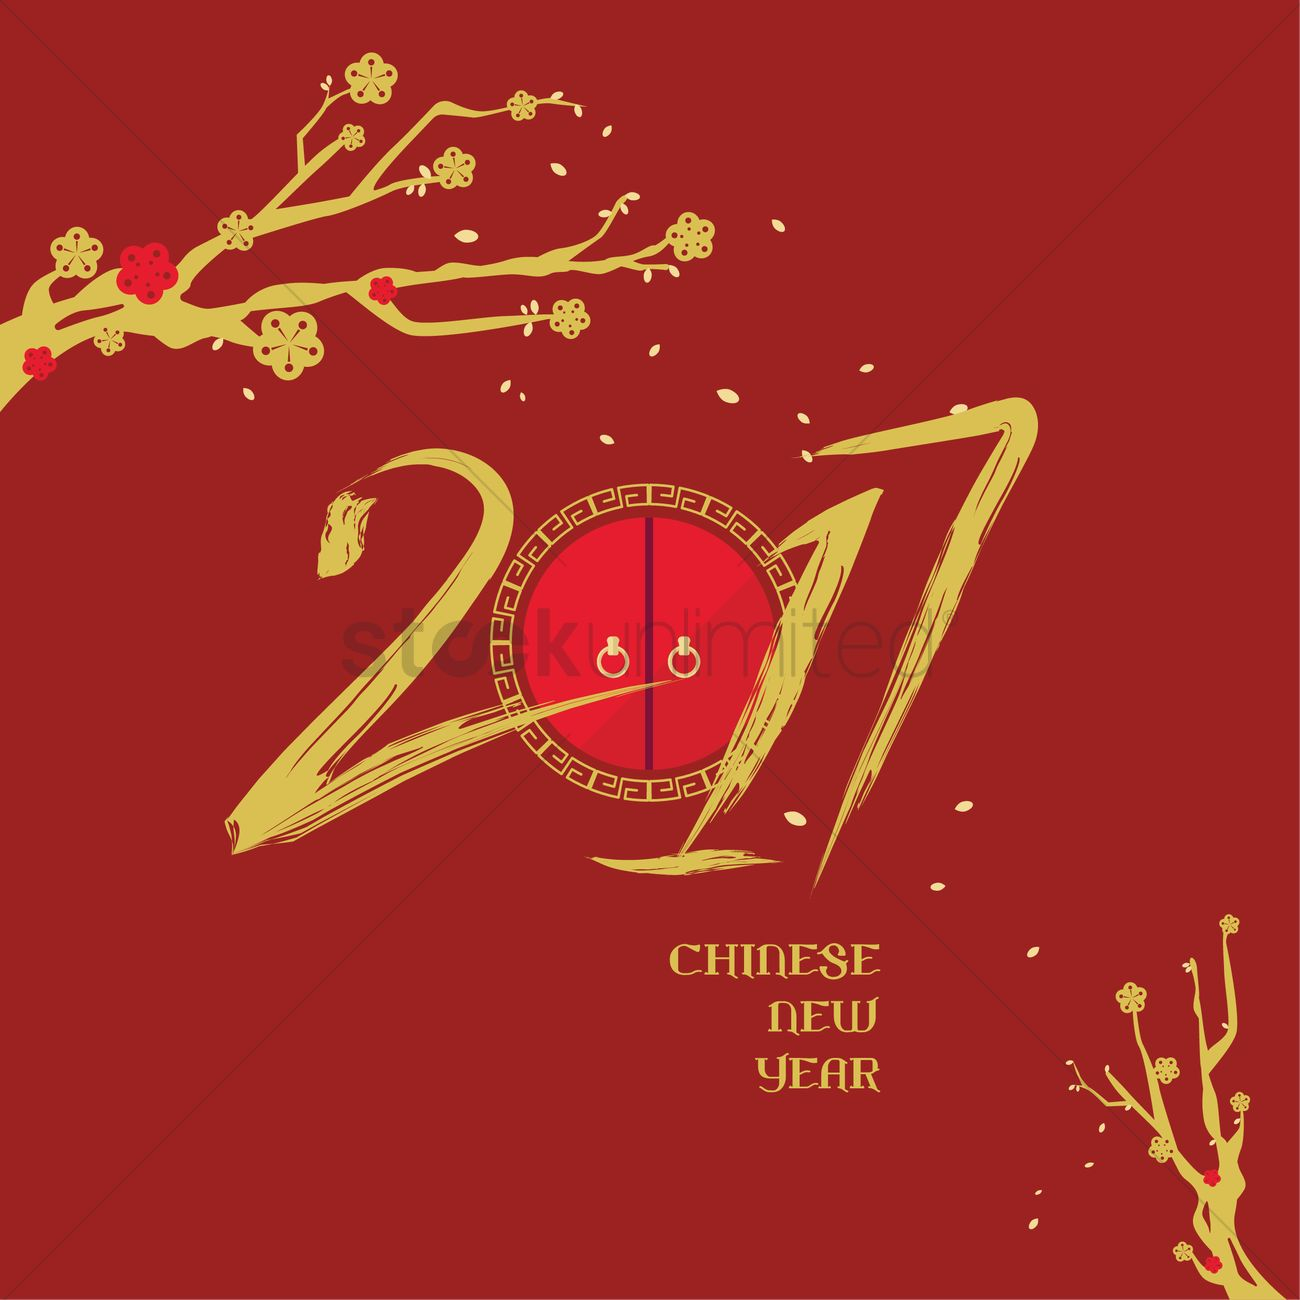 2017 chinese new year vector graphic - Chinese New Year 1973